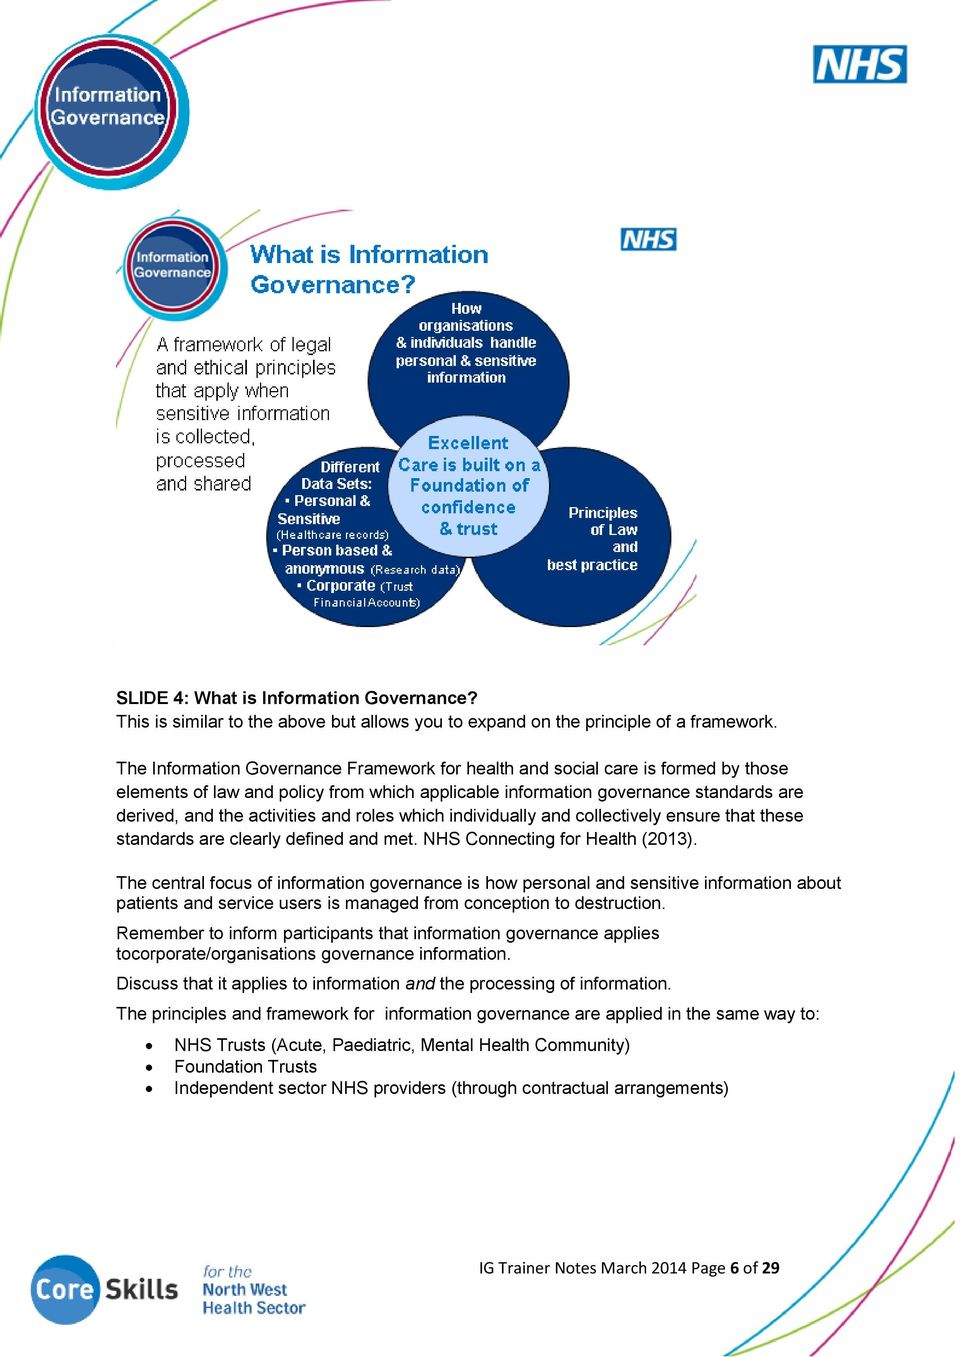 and roles which individually and collectively ensure that these standards are clearly defined and met. NHS Connecting for Health (2013).